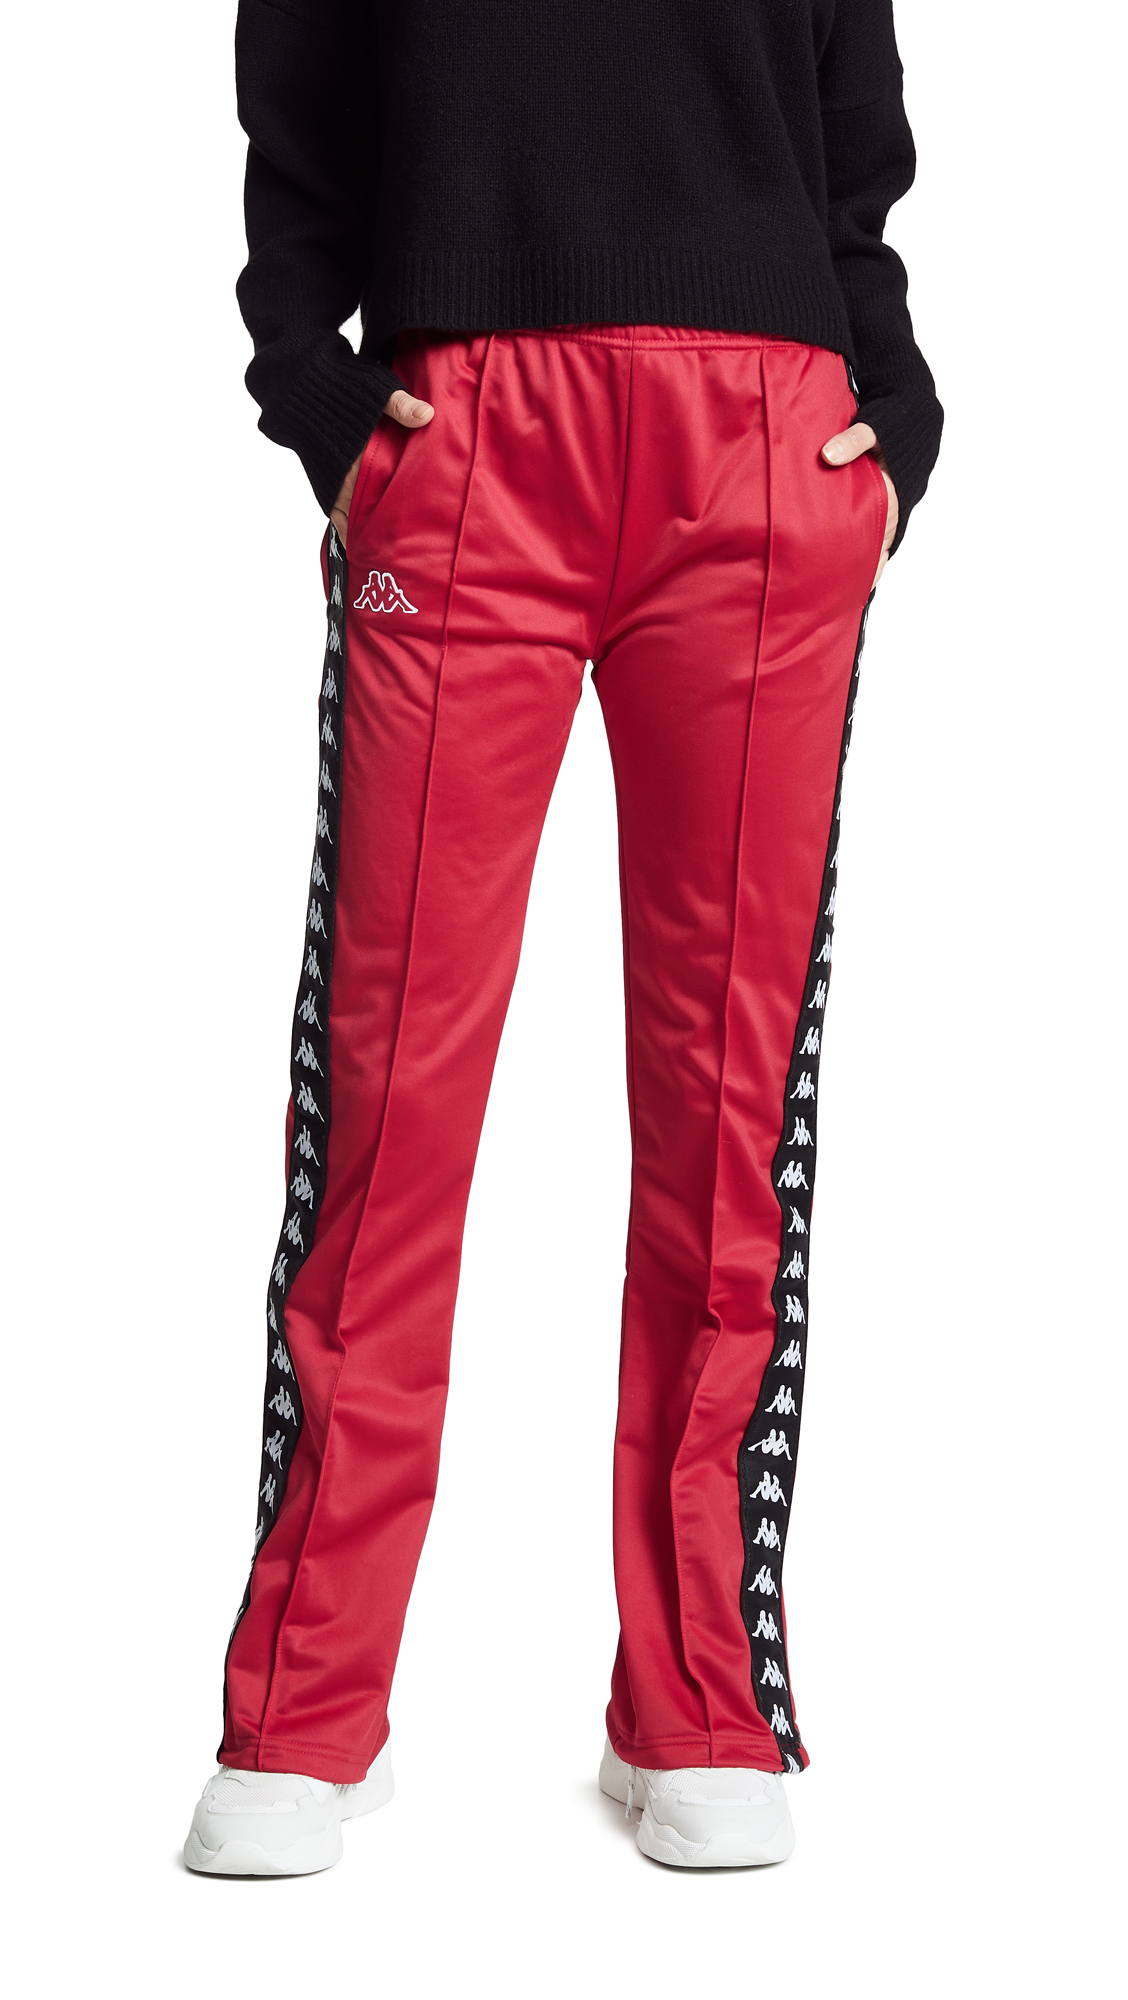 Popper Tracksuit Pant With Logo Taping - Red in Red/Dark Black